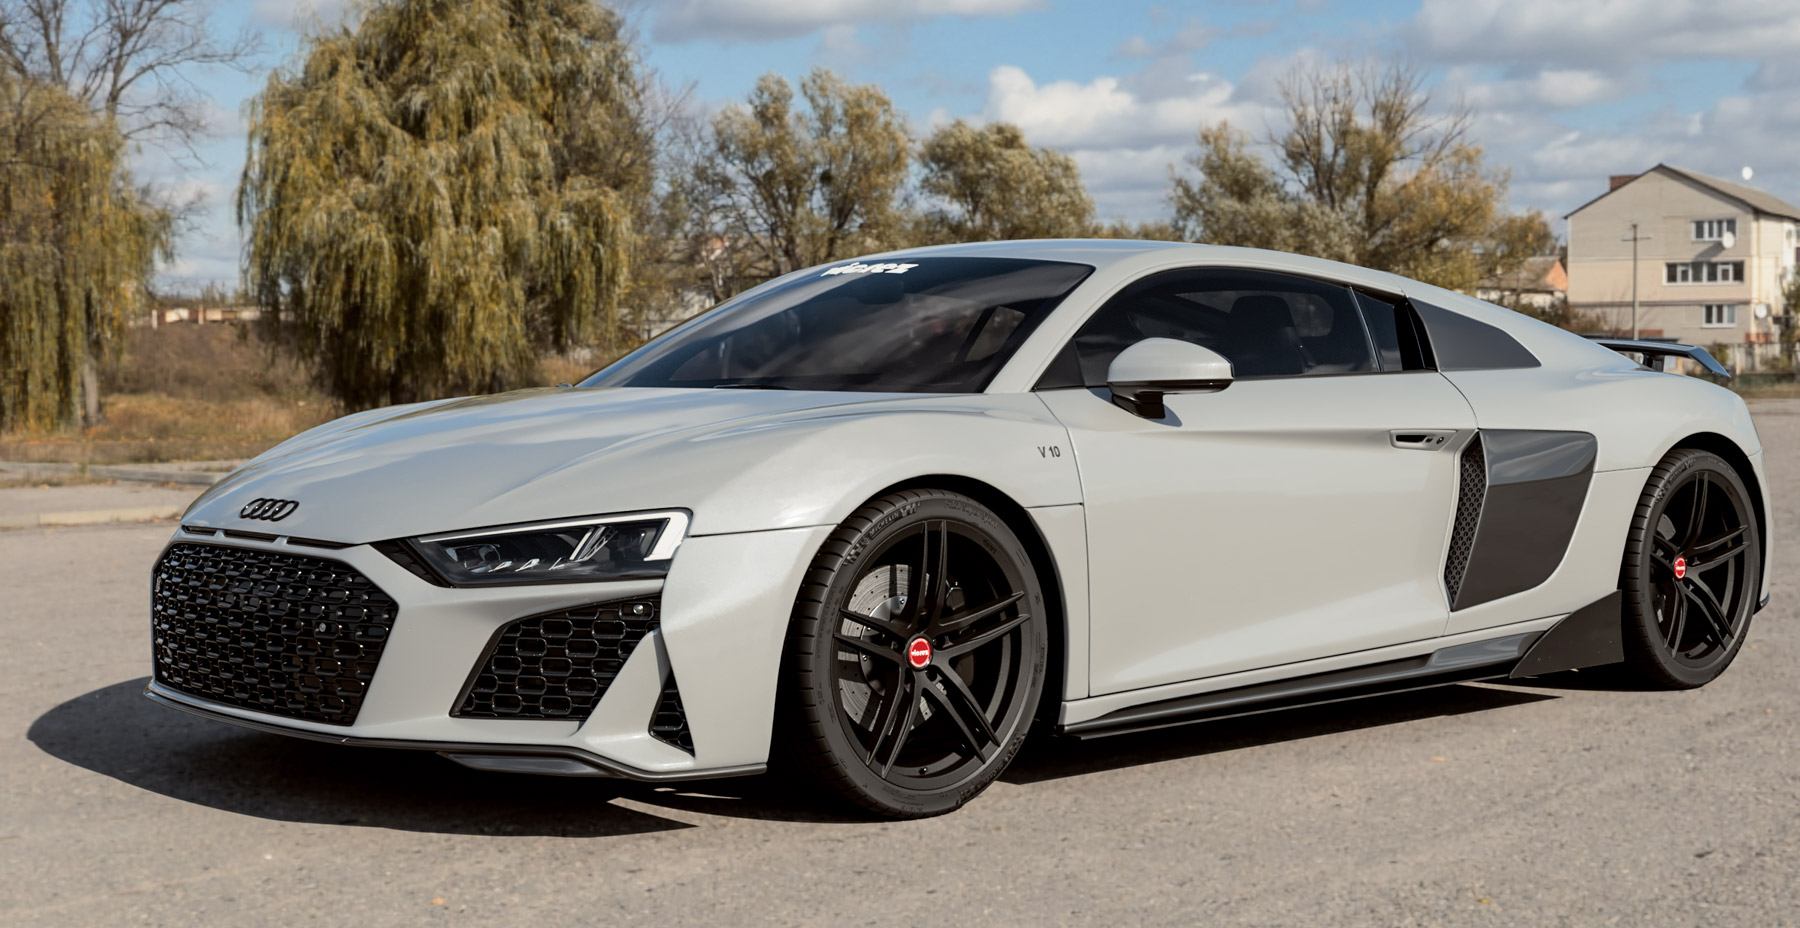 2020 Audi R8 Silver Metallic x Vicrez VAF Forged Wheels (Finished in Gloss Black)